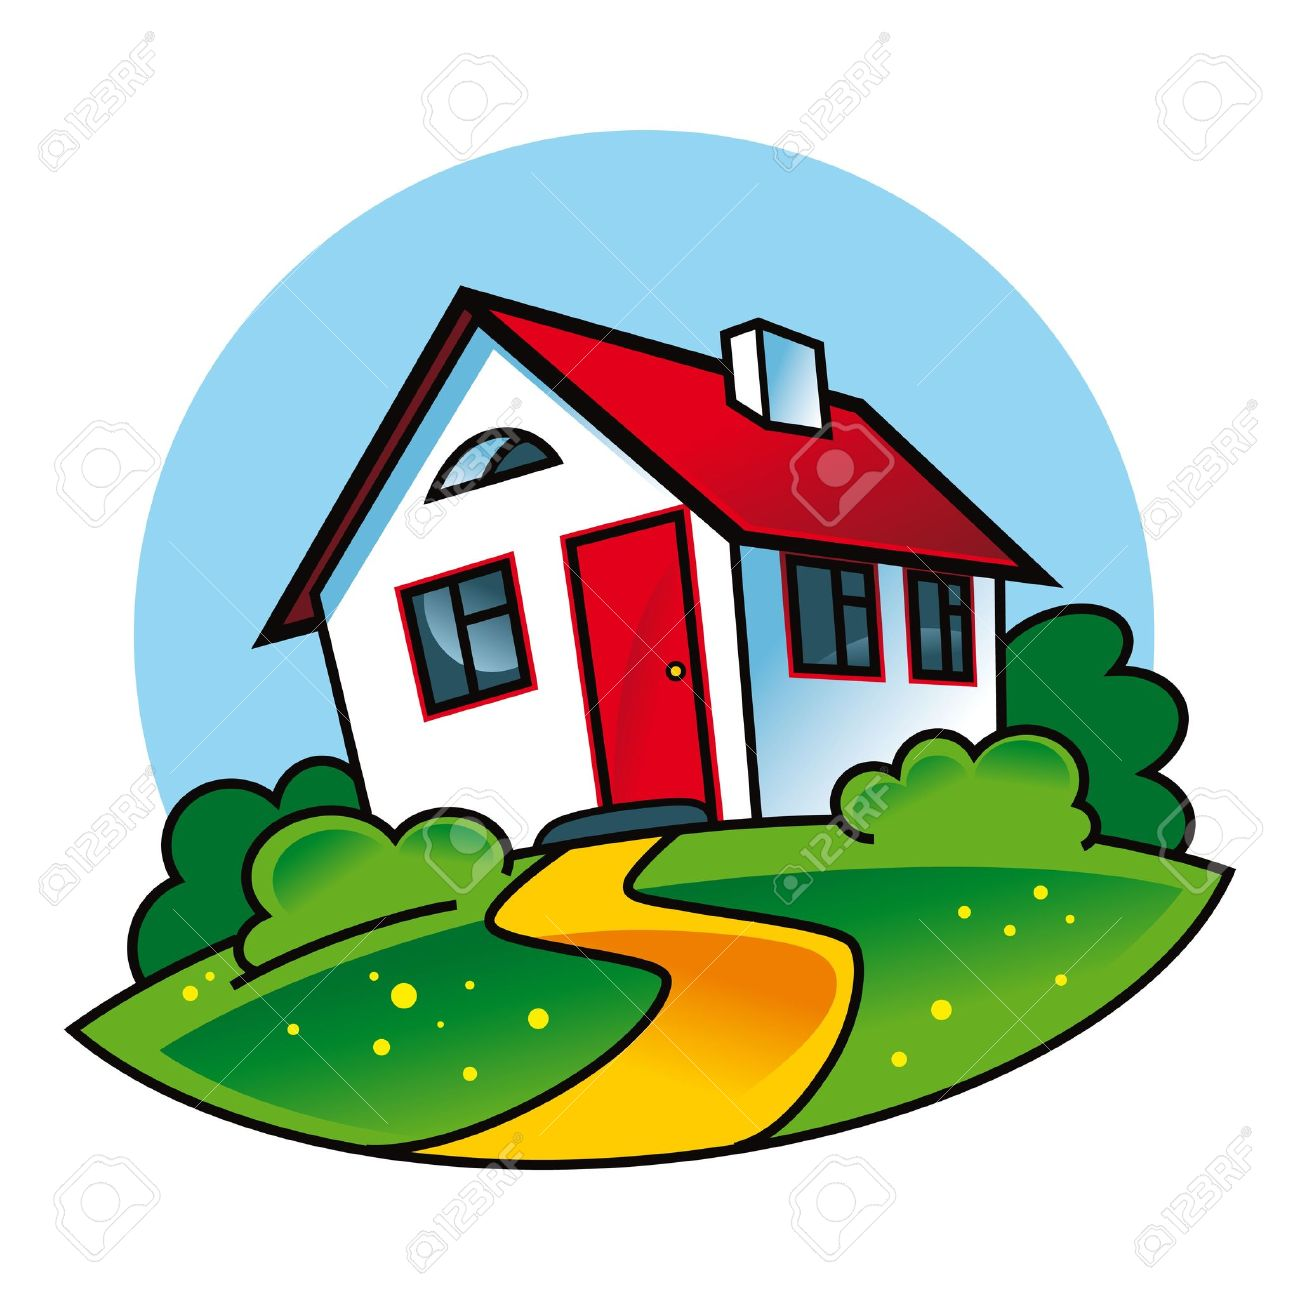 Farm House Clipart at GetDrawings com | Free for personal use Farm